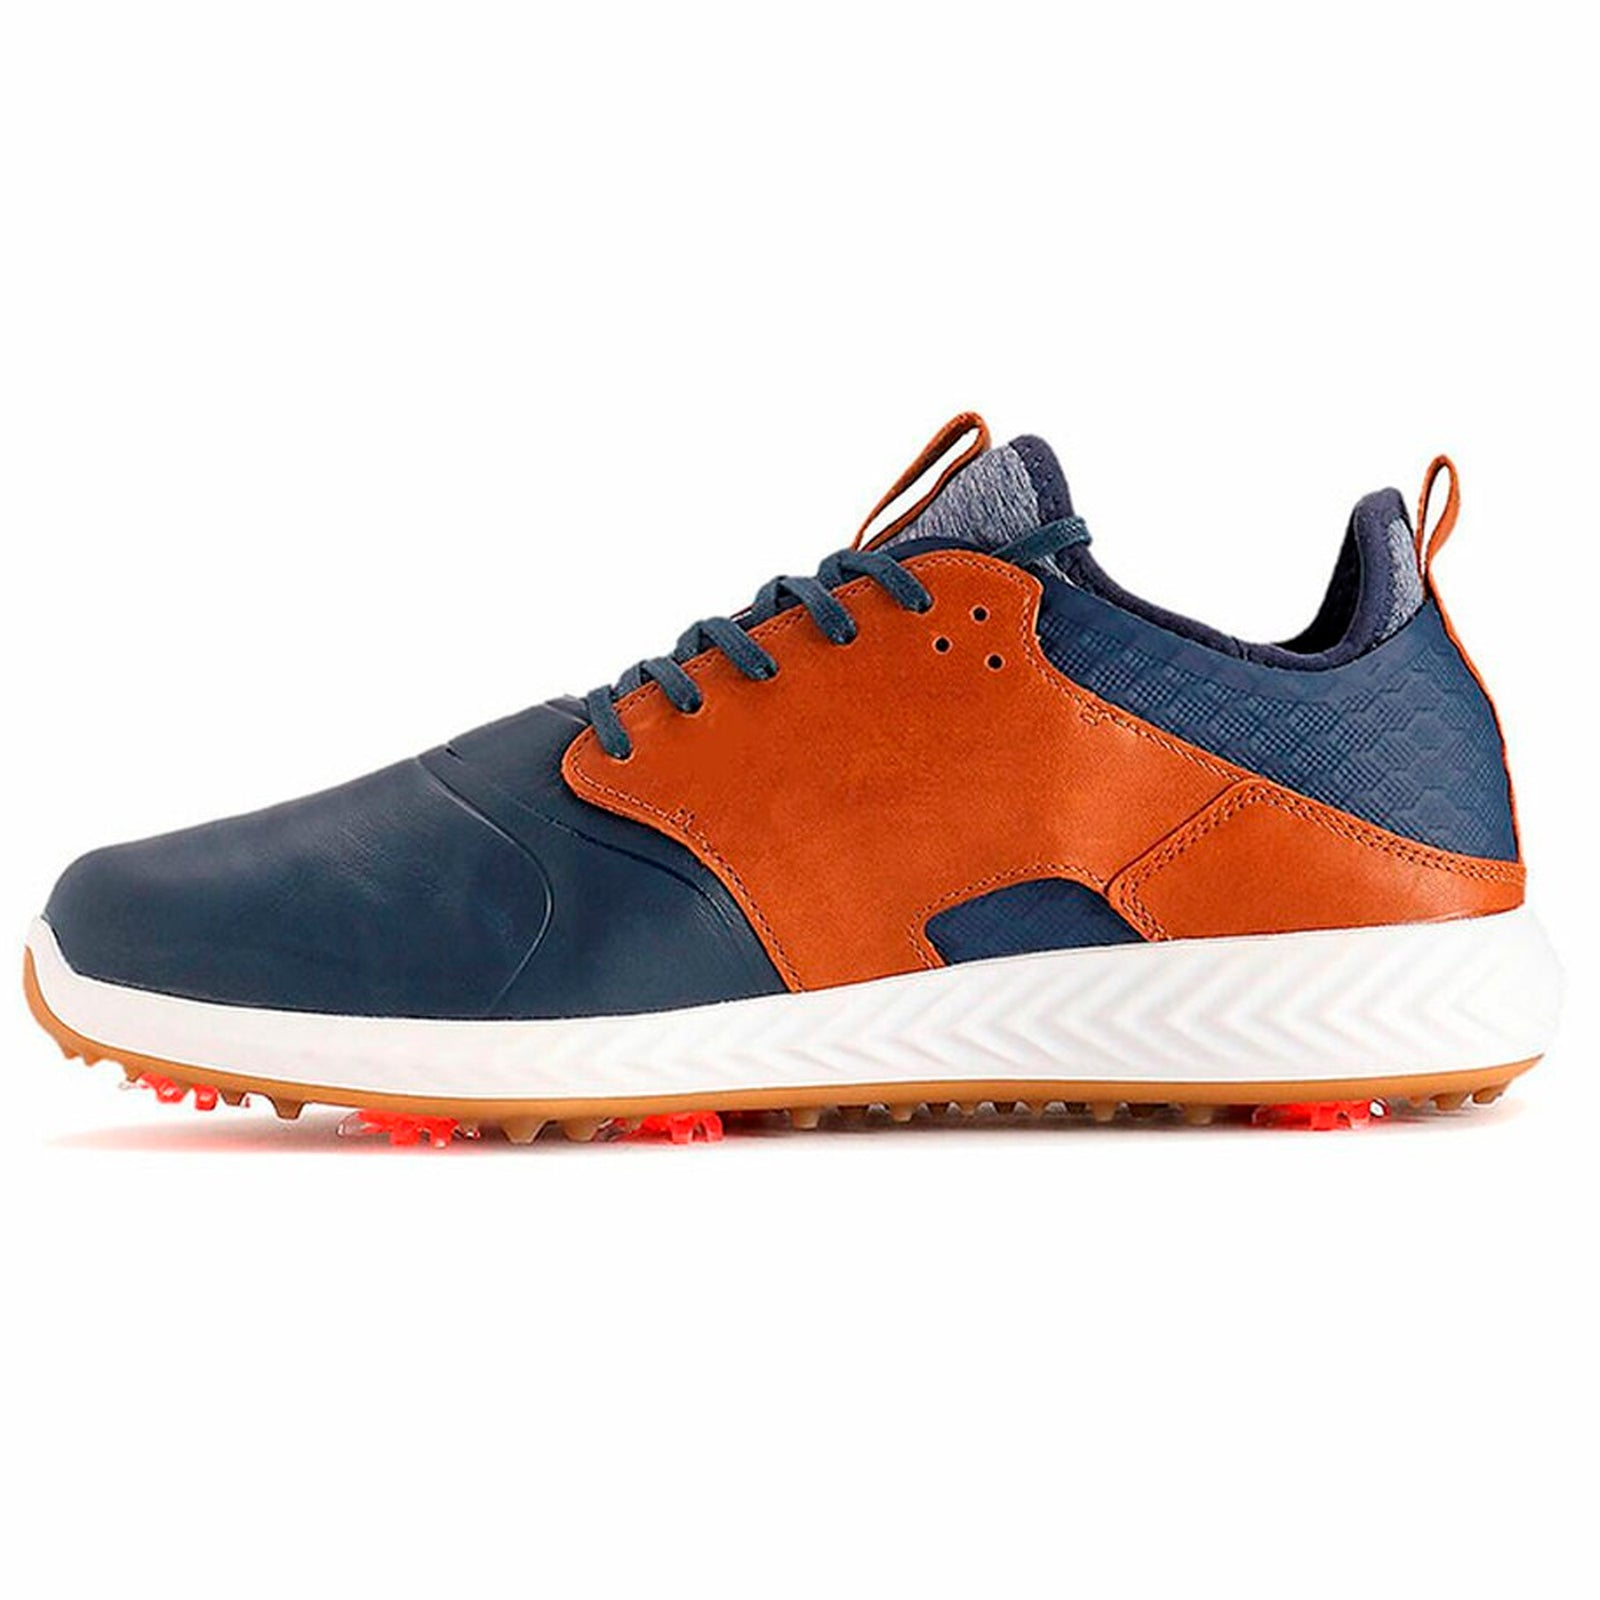 Puma IGNITE PWRADAPT Caged Crafted Golf Shoes - Peacoat/Leather Brown/Gold